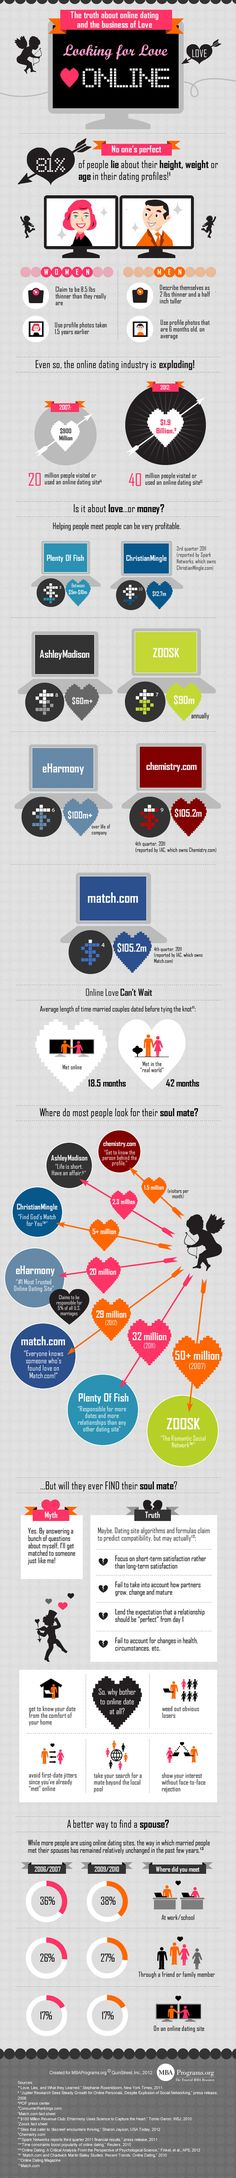 Online Dating Statistics 2012 [Infographic]